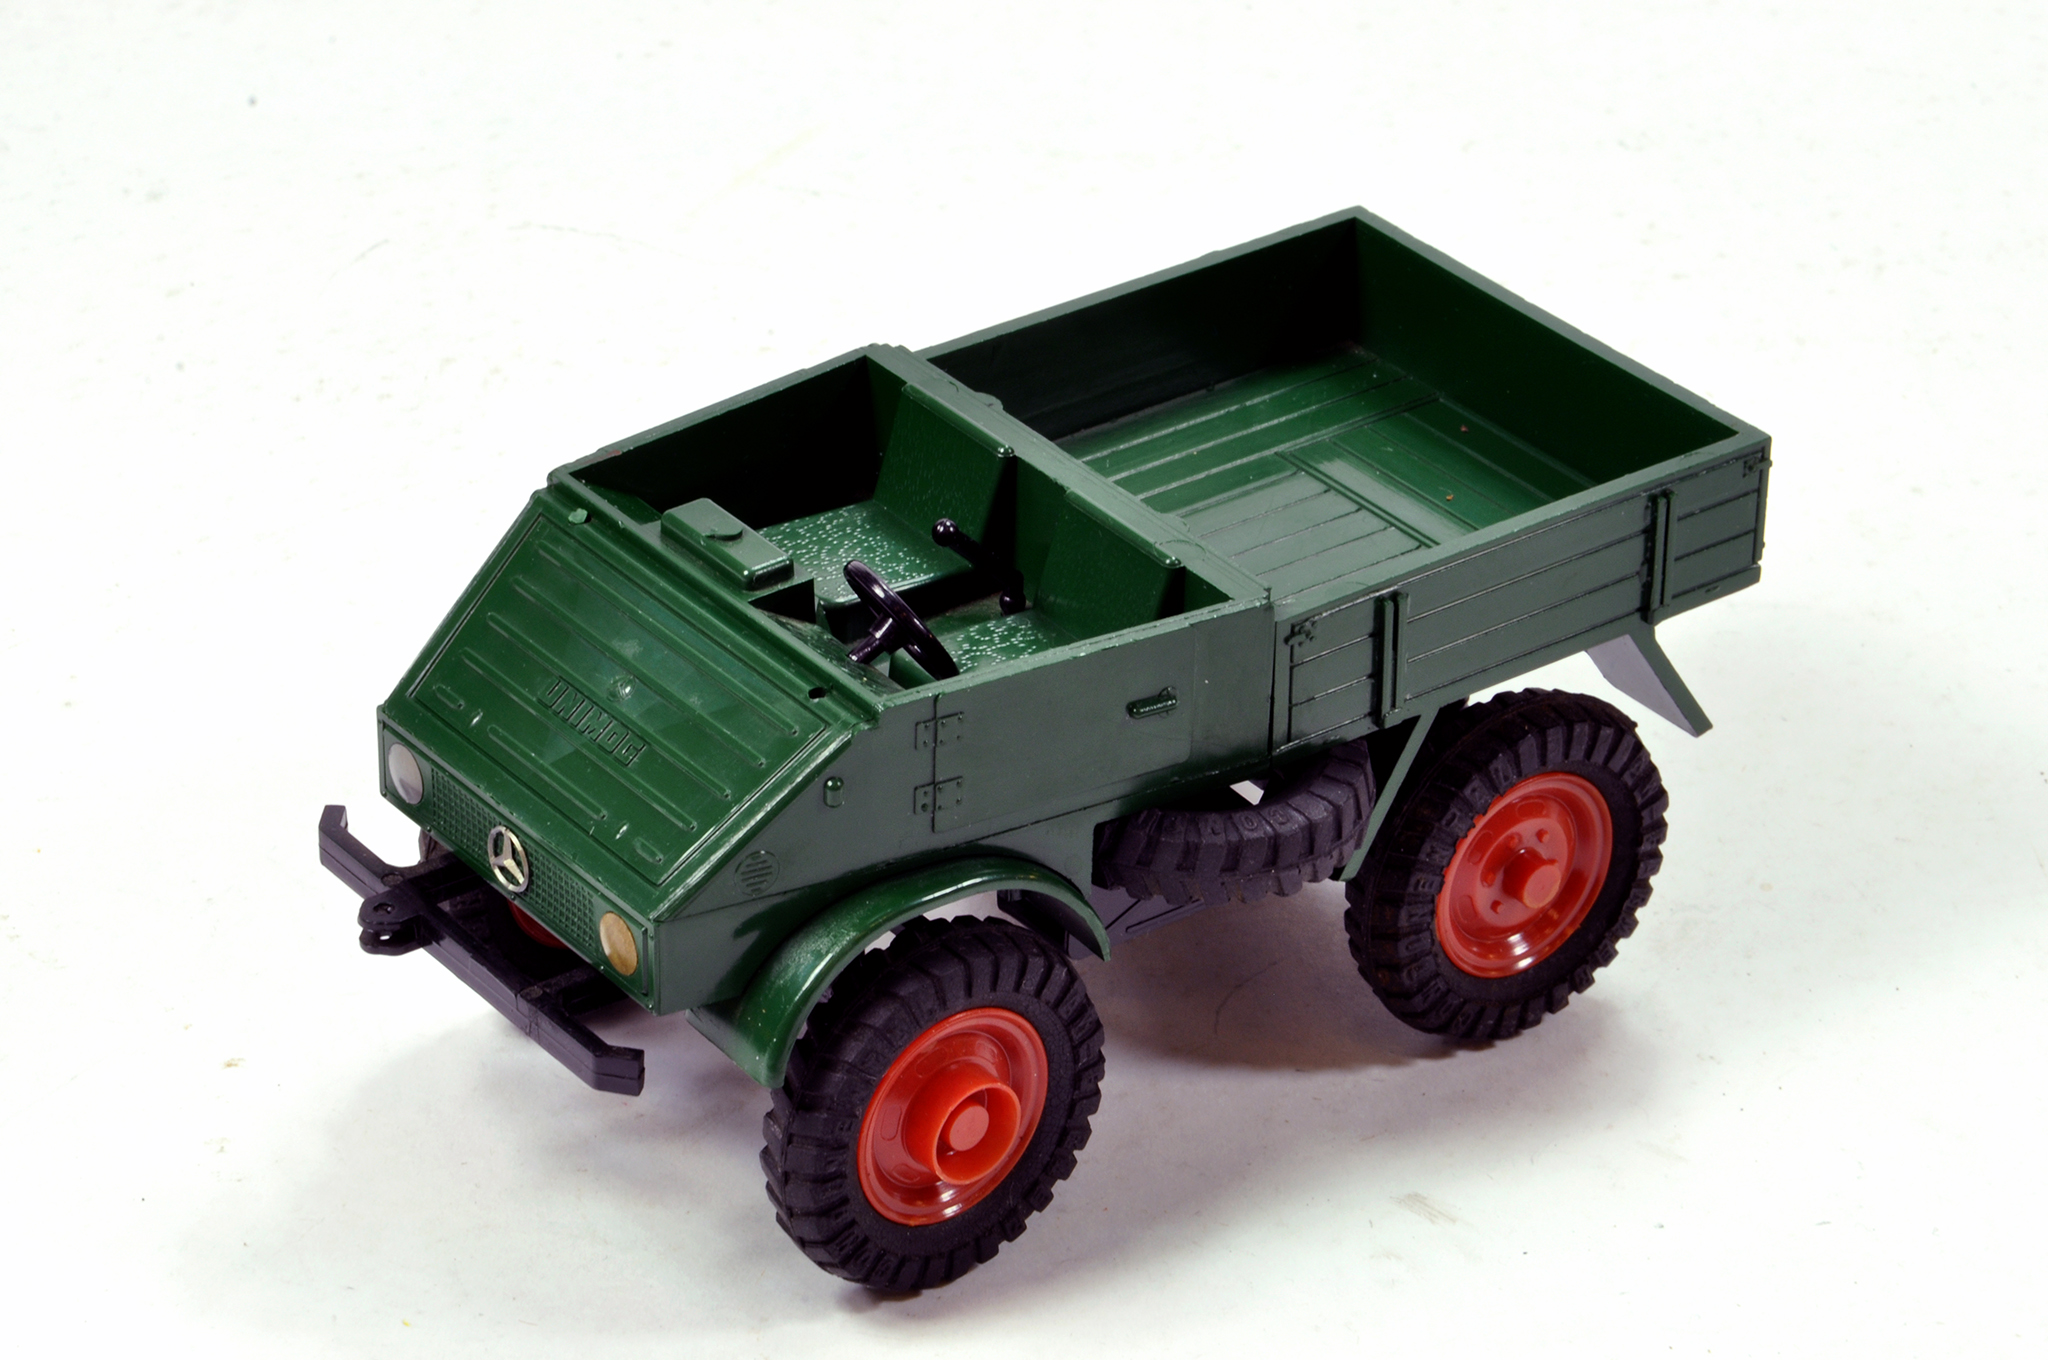 Lot 881 - Very Rare approx 1/25 scale plastic issue promotional model of a Mercedes Unimog from Cursor (